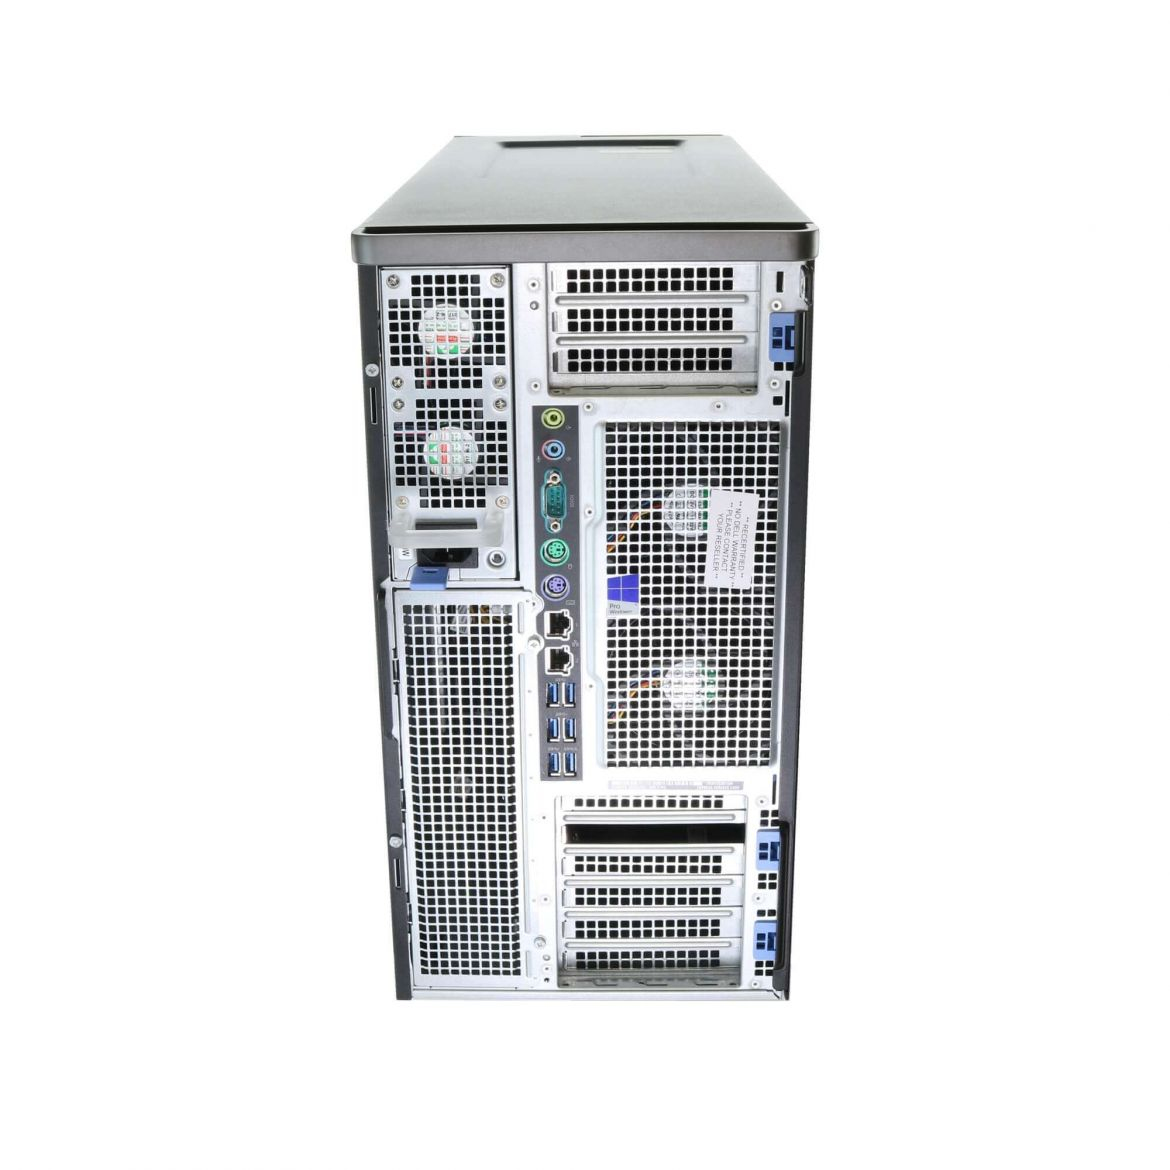 Dell T7920 Workstation 2